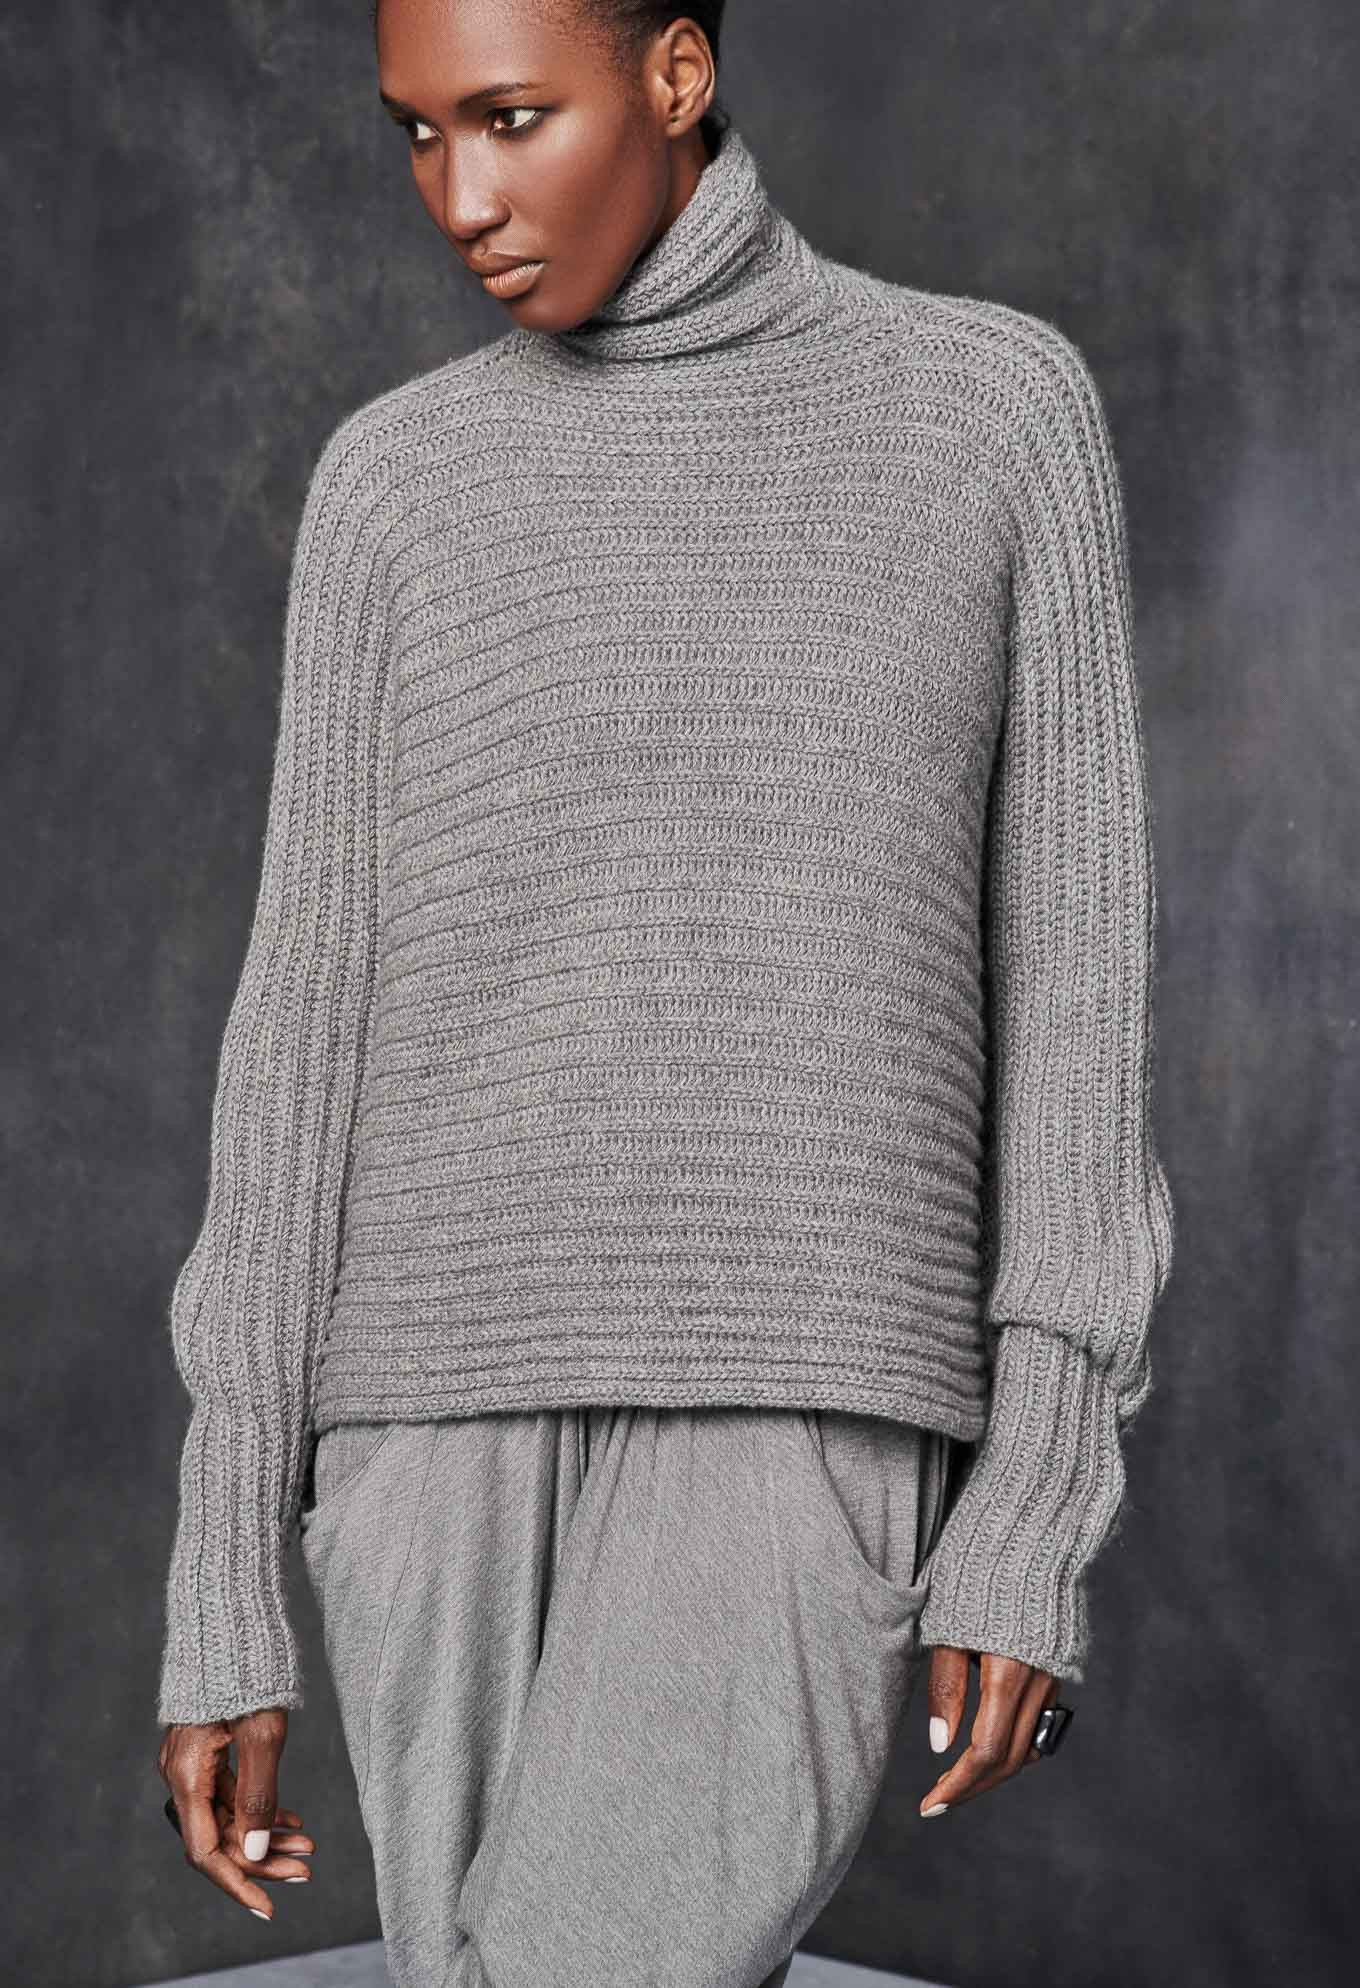 High Neck Horizontal Rib Sweater | neuleet | Pinterest | Knitwear ...